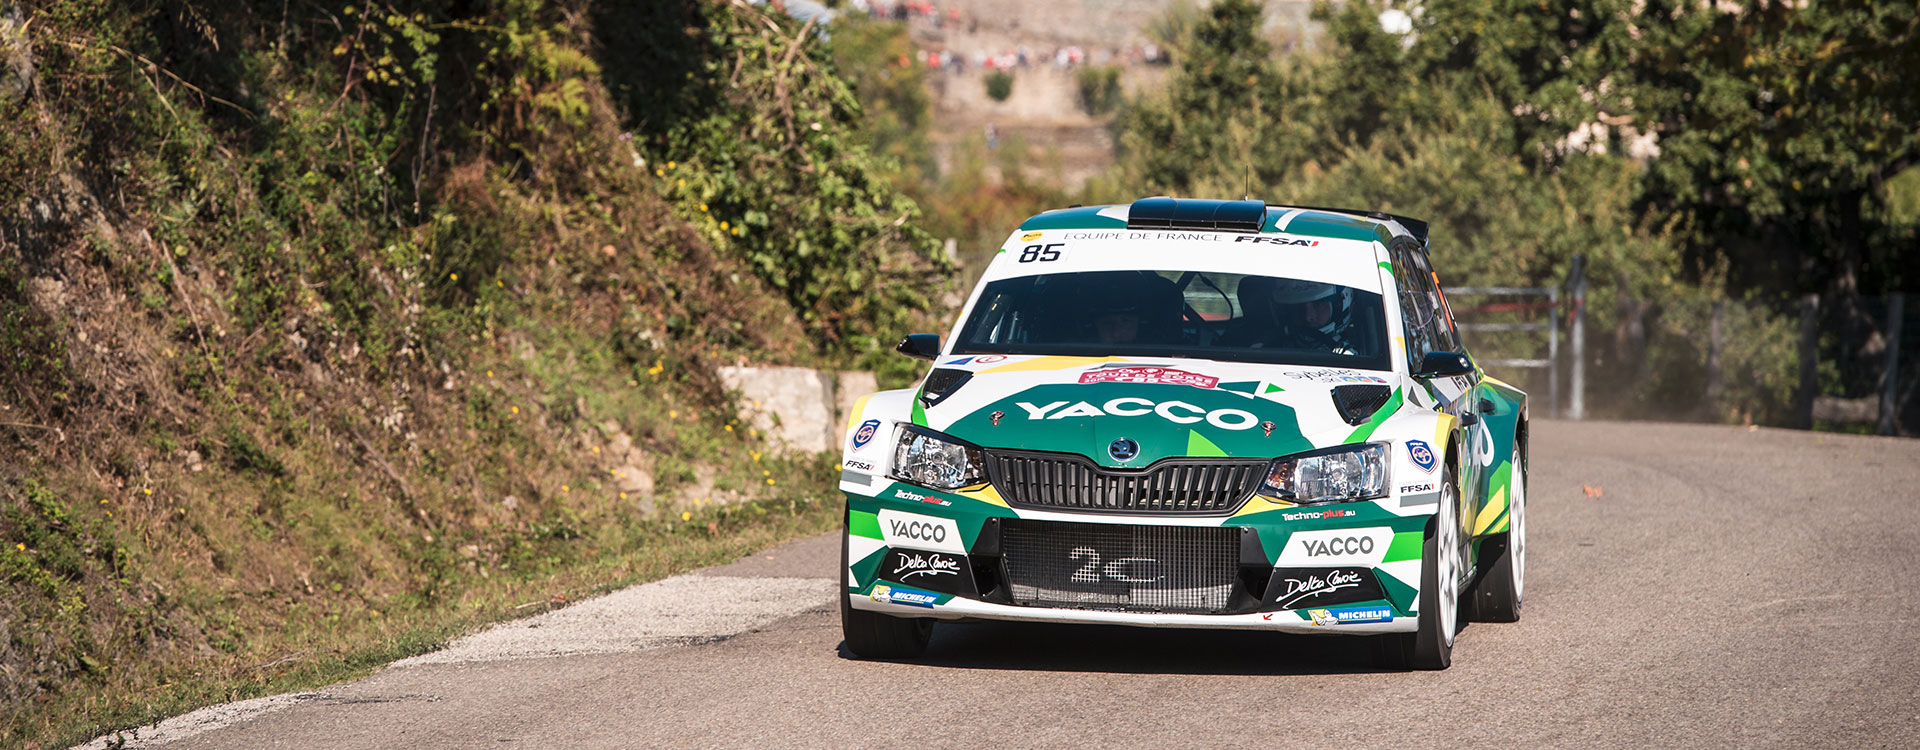 PHOTO: ŠKODA Customer Teams at the Tour de Corse 2016